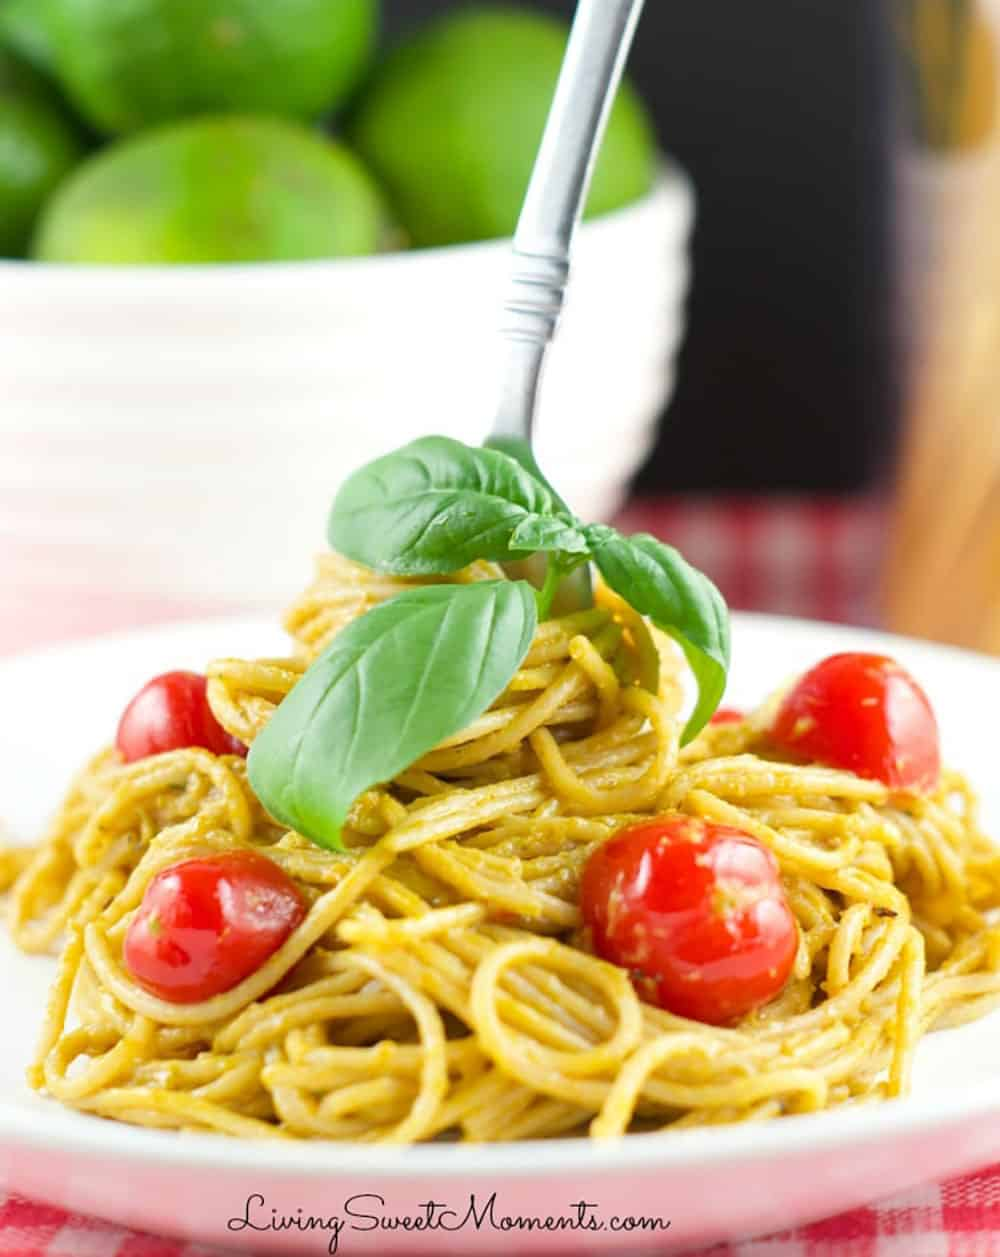 Roasted red pepper and avocado pasta on a white plate with a fork in the center, garnished with cherry tomatoes and basil